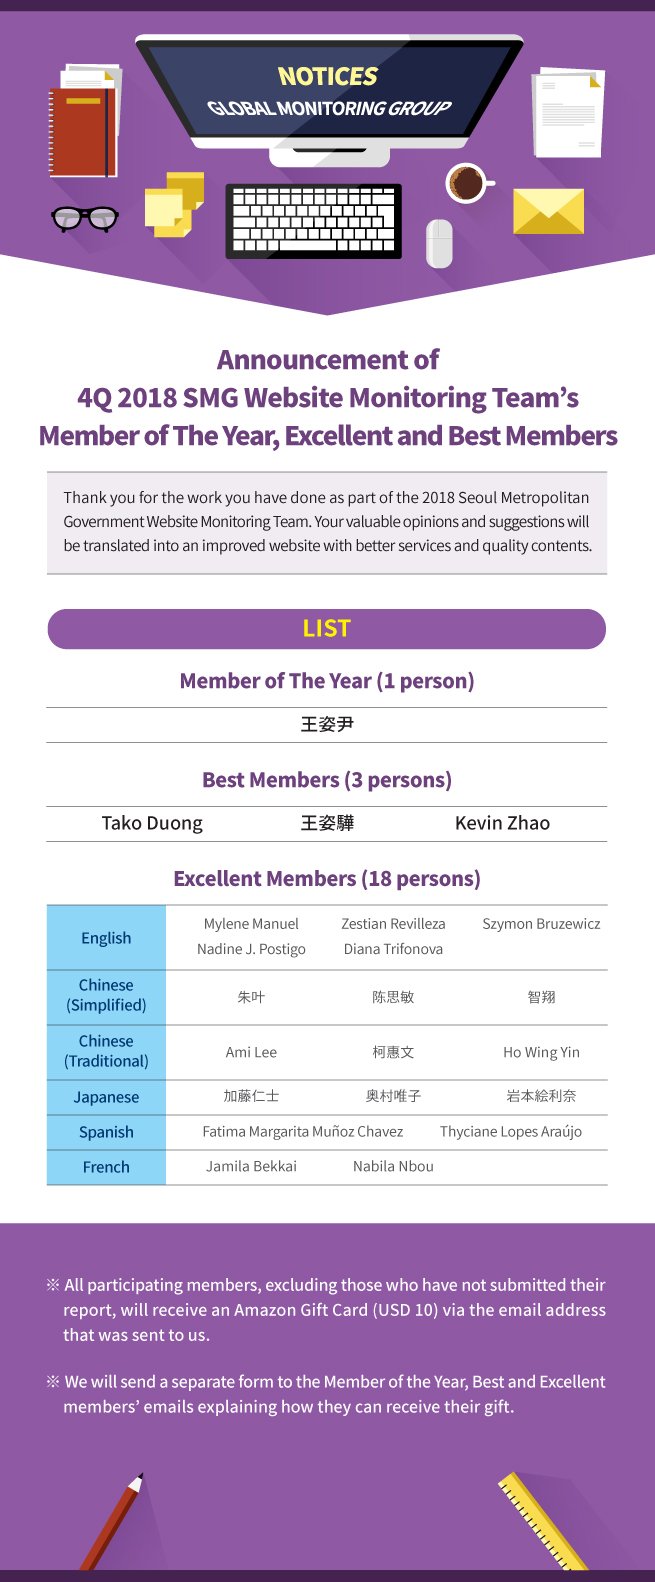 [Announcement of 2018 SMG Website Monitoring Team's  Member of The Year, Excellent and Best Members]  Thank you for the work you have done as part of the 2018 Seoul Metropolitan Government Website Monitoring Team. Your valuable opinions and suggestions will be translated into an improved website with better services and quality contents.  ------------------------------------------------------------------------------------------- LIST Member of The Year (1 person) 王姿尹  Best Members (3 persons) Tako Duong   王姿驊   Kevin Zhao   Excellent Members (18 persons)  English: Mylene Manuel   Zestian Revilleza   Szymon Bruzewicz Nadine J. Postigo   Diana Trifonova Chinese (Simplified): 朱叶   陈思敏   智翔 Chinese (Traditional): Ami Lee    柯惠文   Ho Wing Yin           Japanese: 加藤仁士   奥村唯子   岩本絵利奈            Spanish: Fatima Margarita Muñoz Chavez   Thyciane Lopes Araújo             French: Jamila Bekkai  Nabila Nbou      ※ All participating members, excluding those who have not submitted their report, will receive an Amazon Gift Card (USD 10) via the email address that was sent to us.   ※ We will send a separate form to the Member of the Year, Best and Excellent members' emails explaining how they can receive their gift.